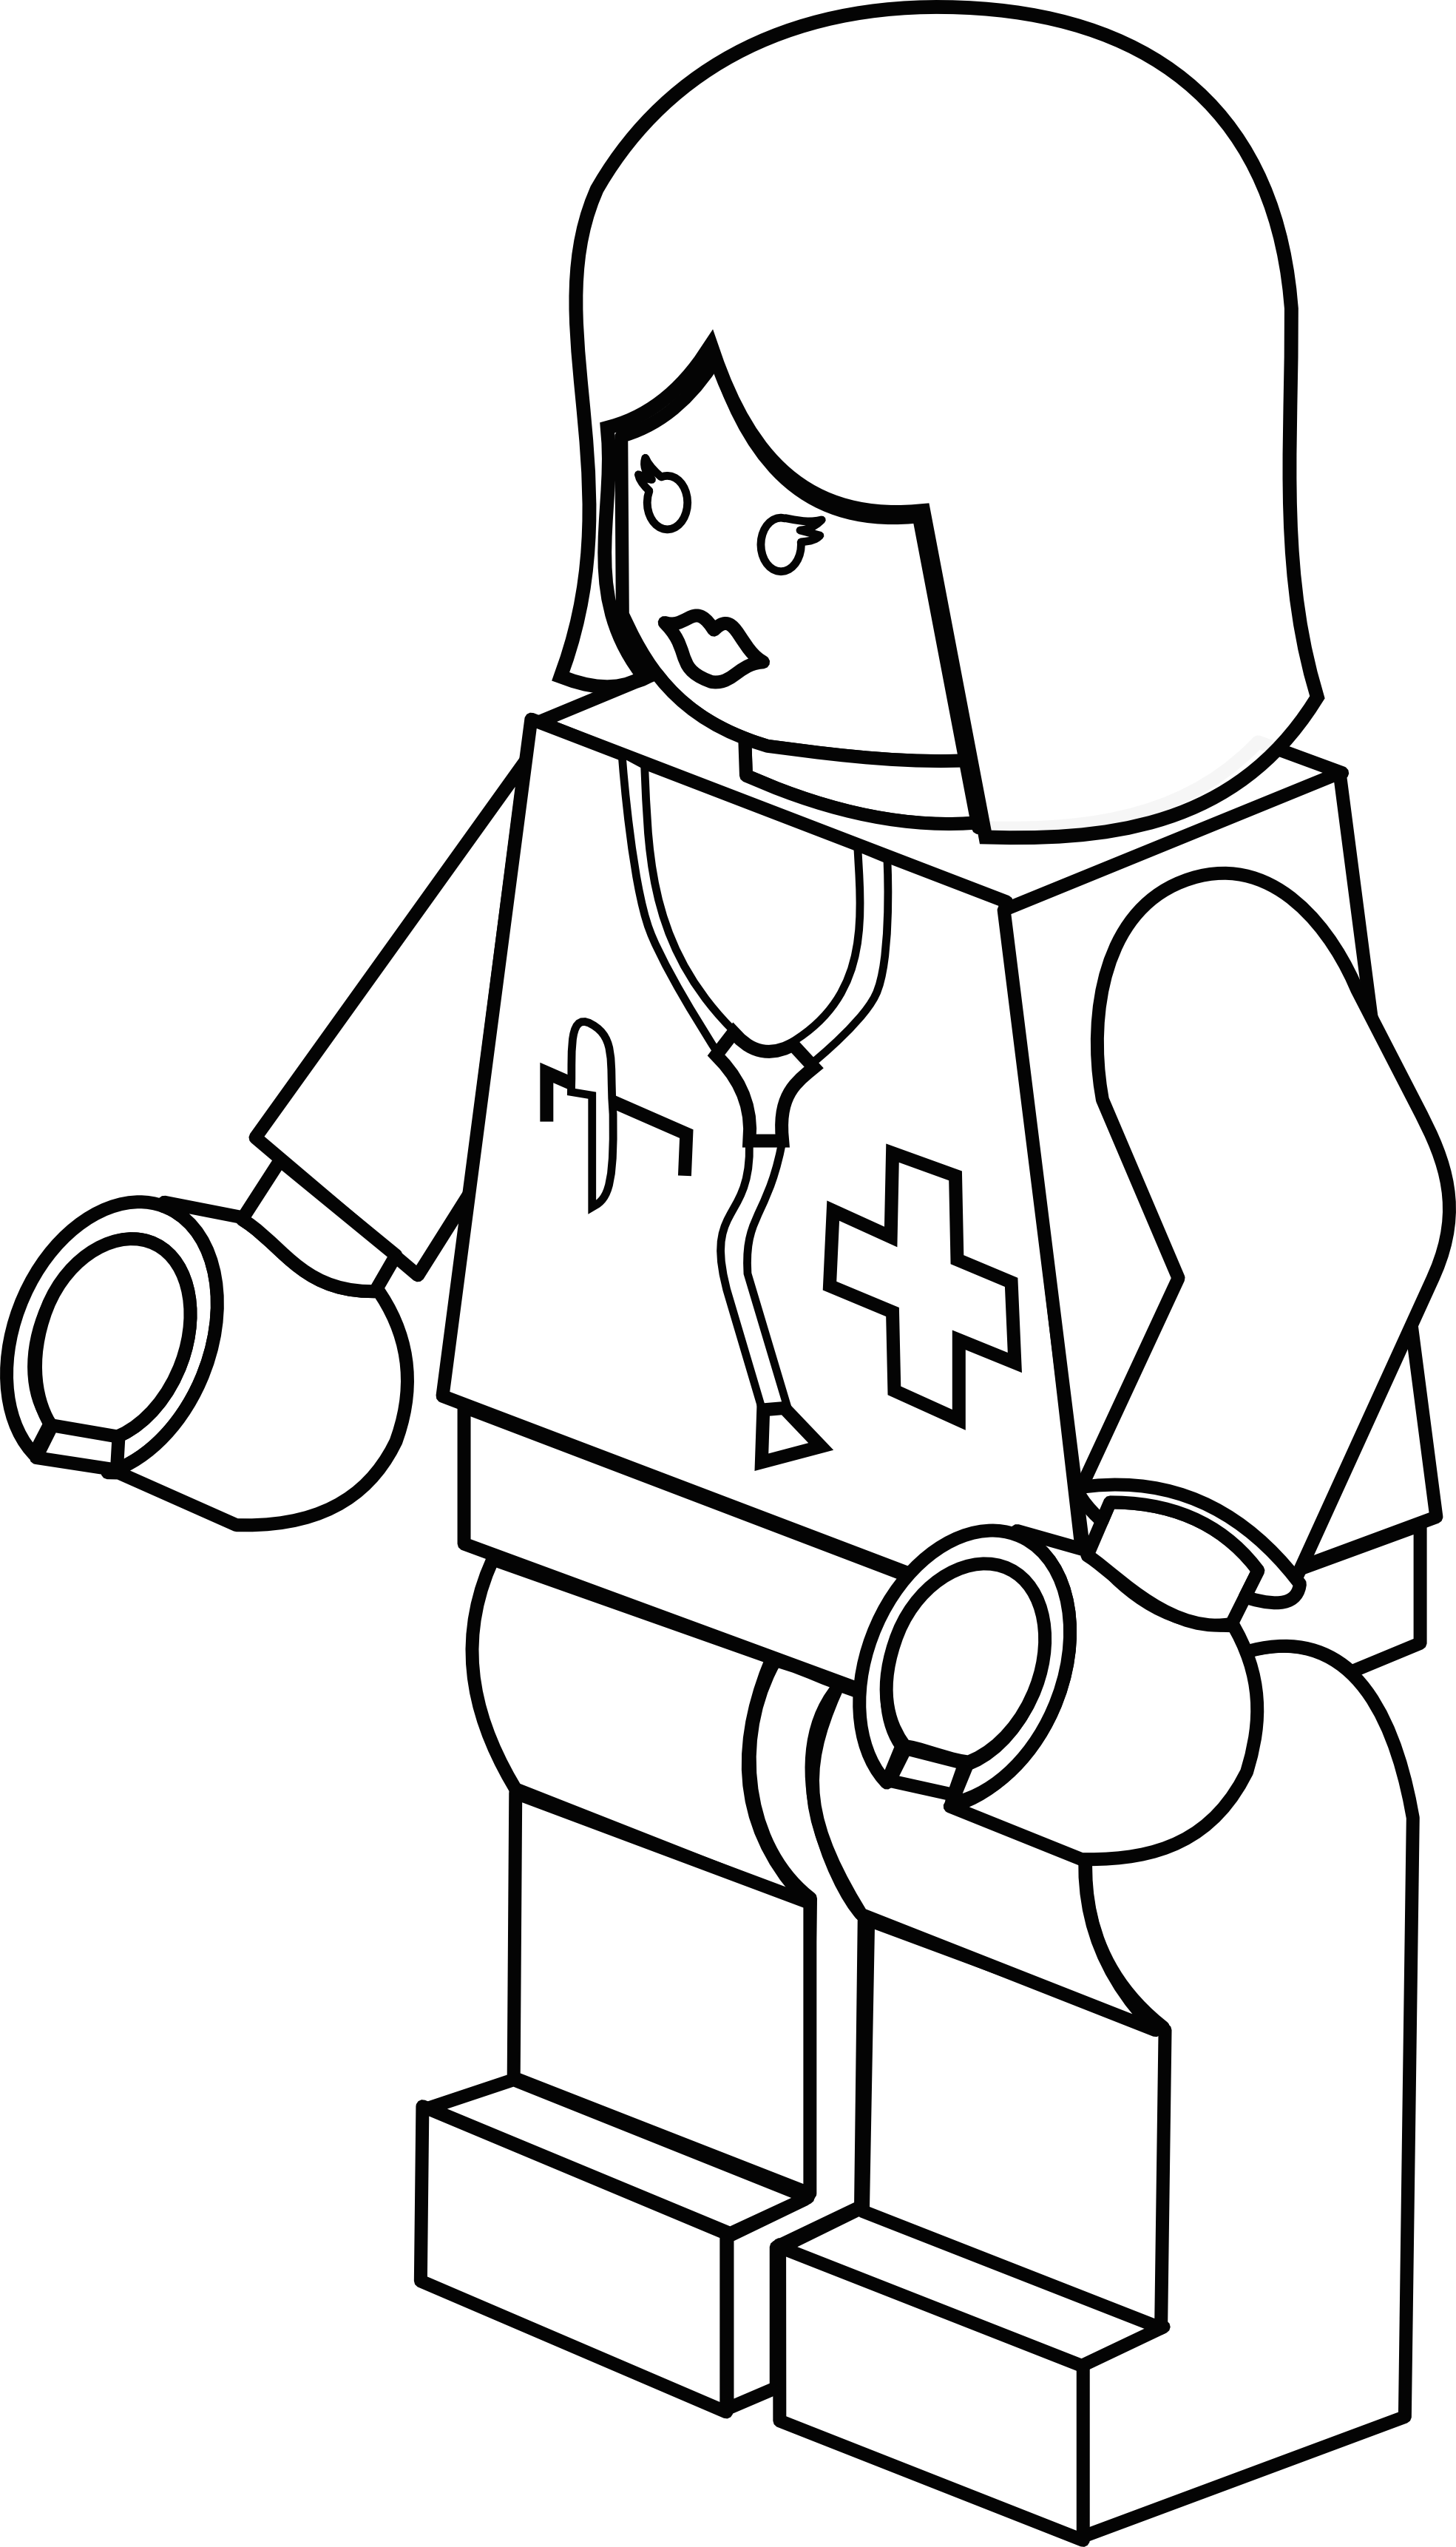 Motivation clipart medical team. Free lego classroom decorations